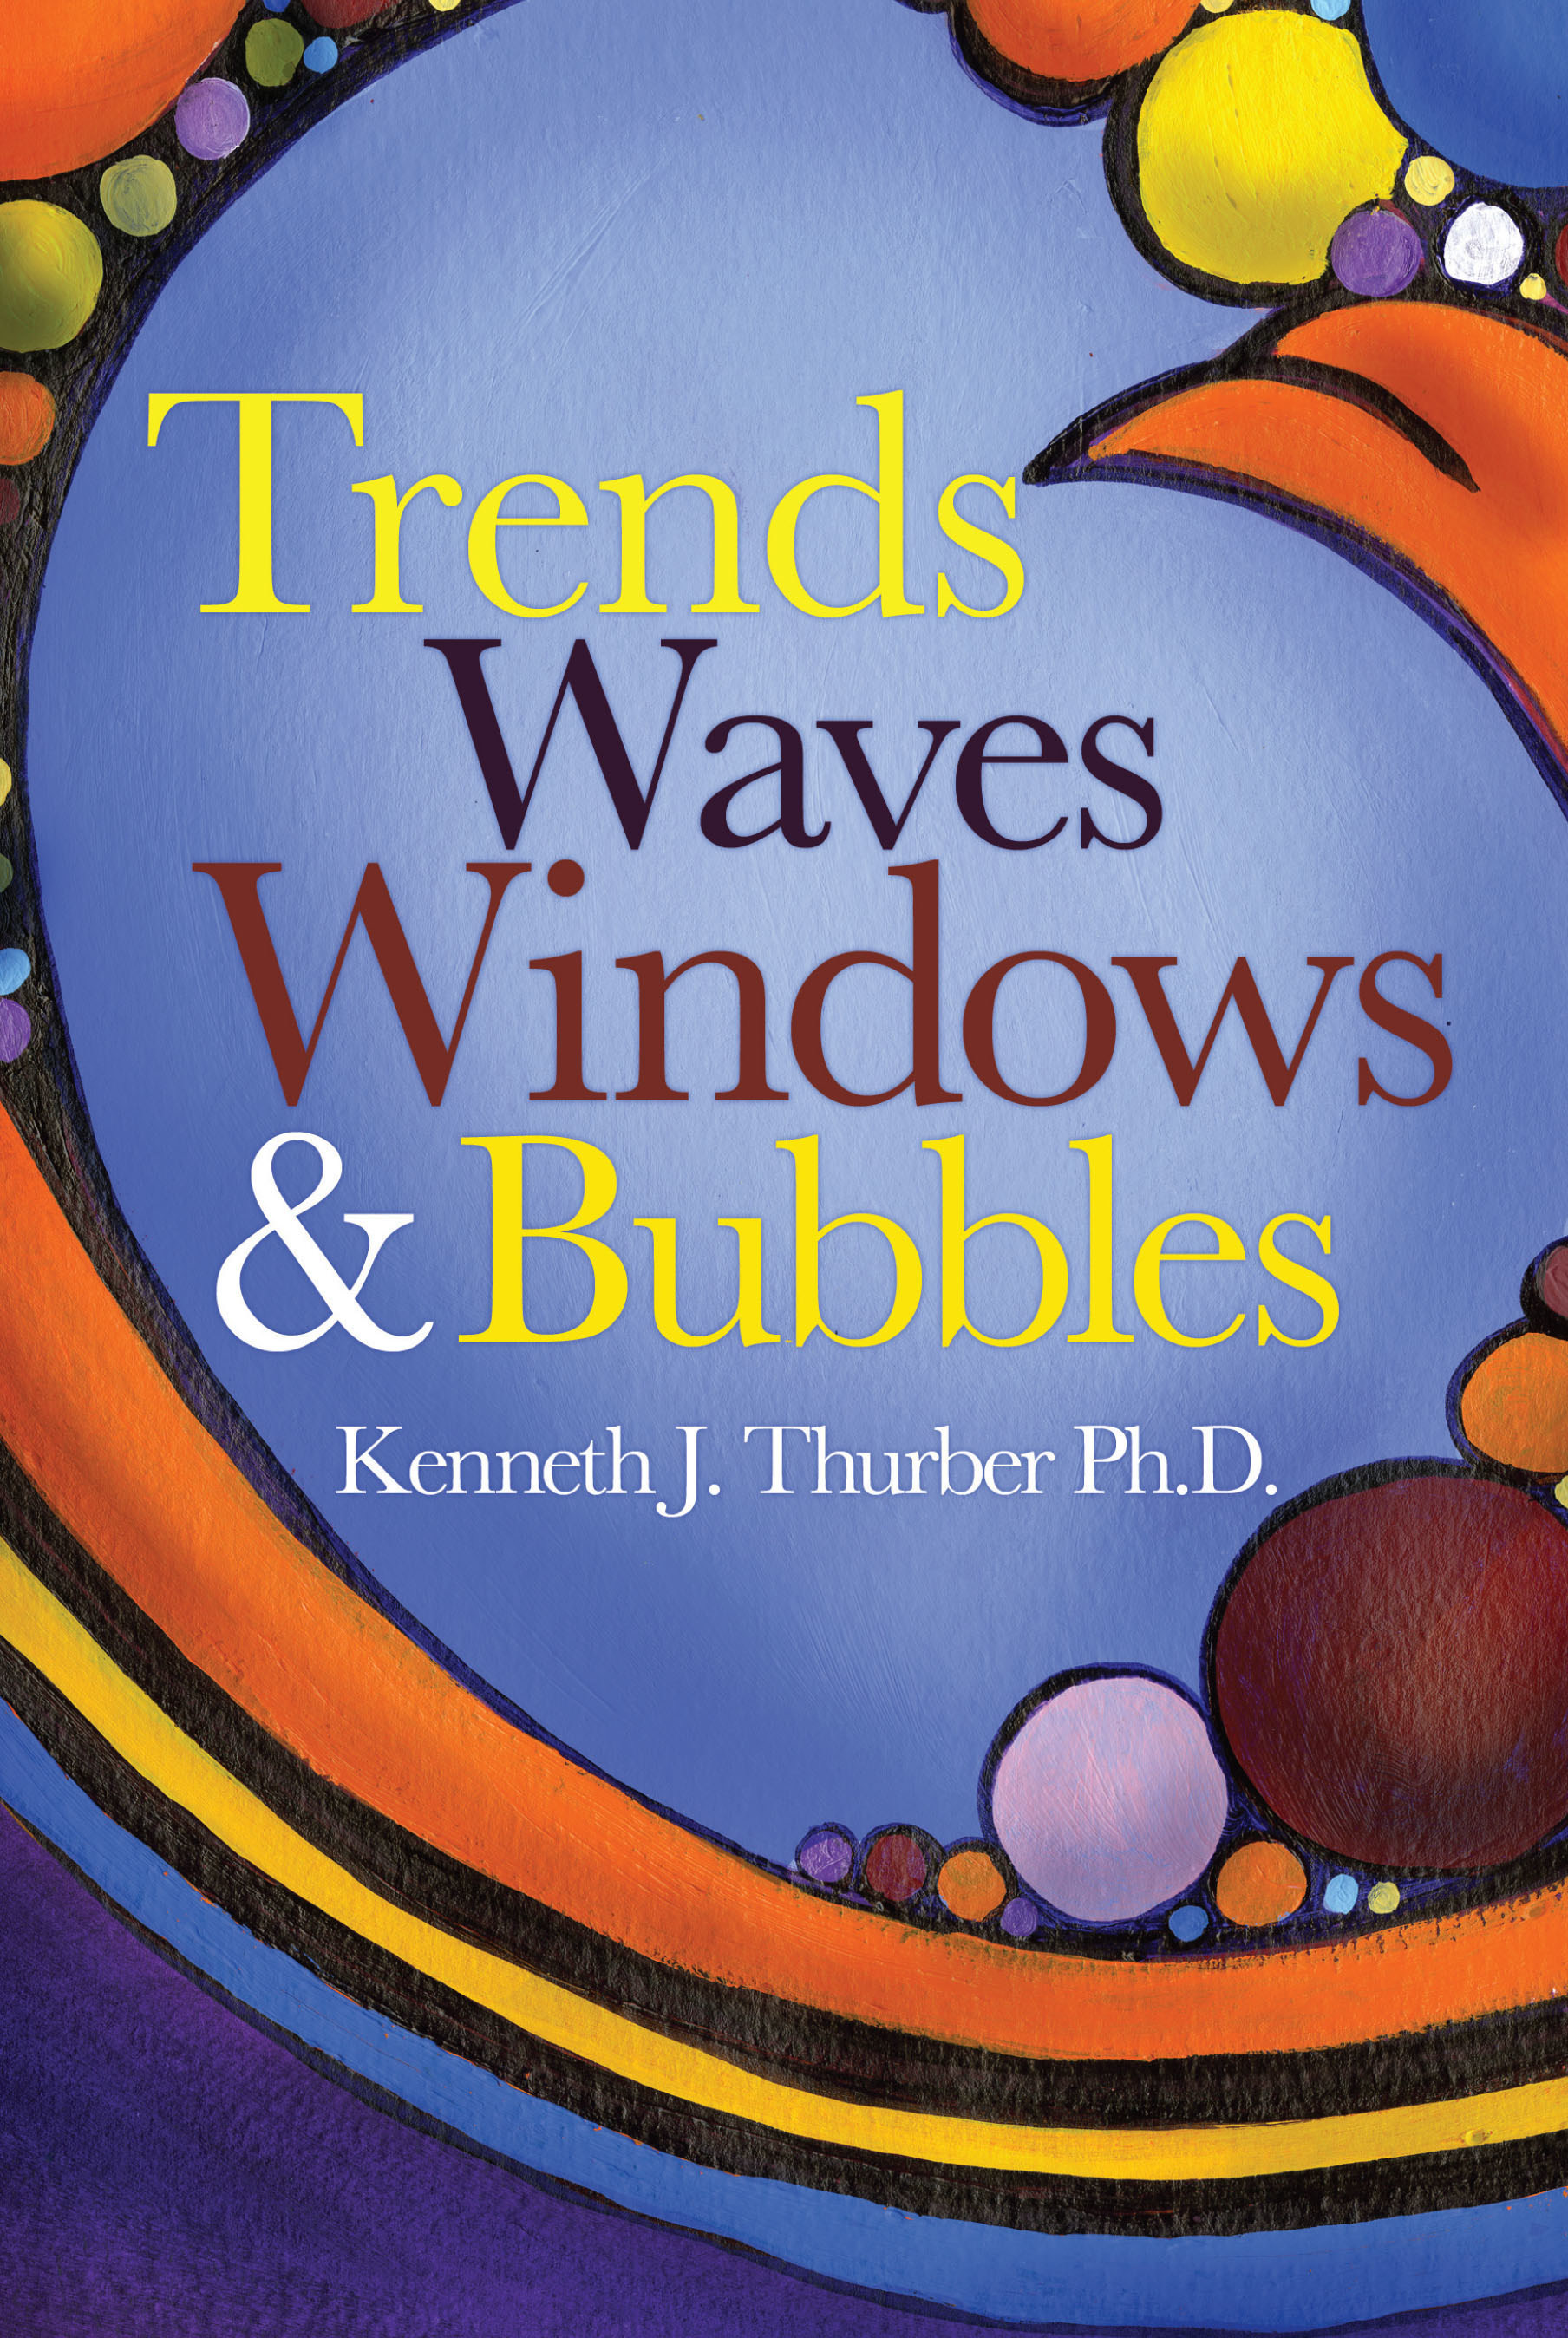 Kenneth J Thurber PhD TrendsWaves FrontCover